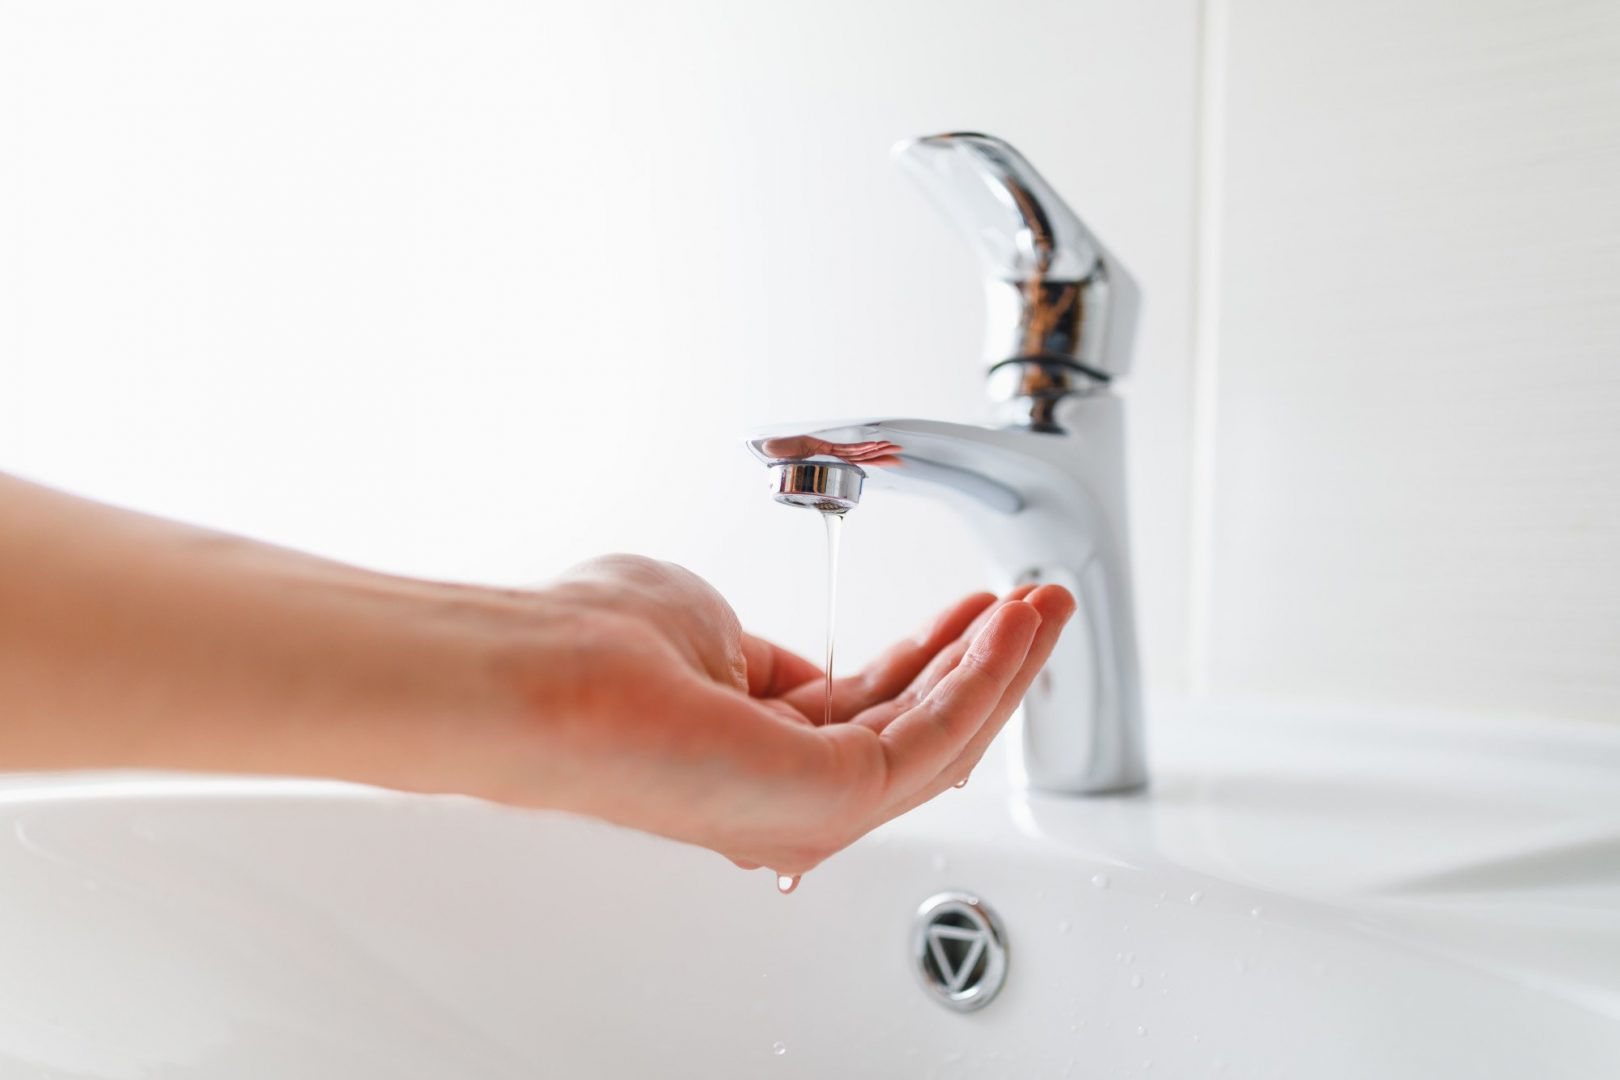 faucet and sink repairs are common, so knowing the proper warning signs can help homeowners